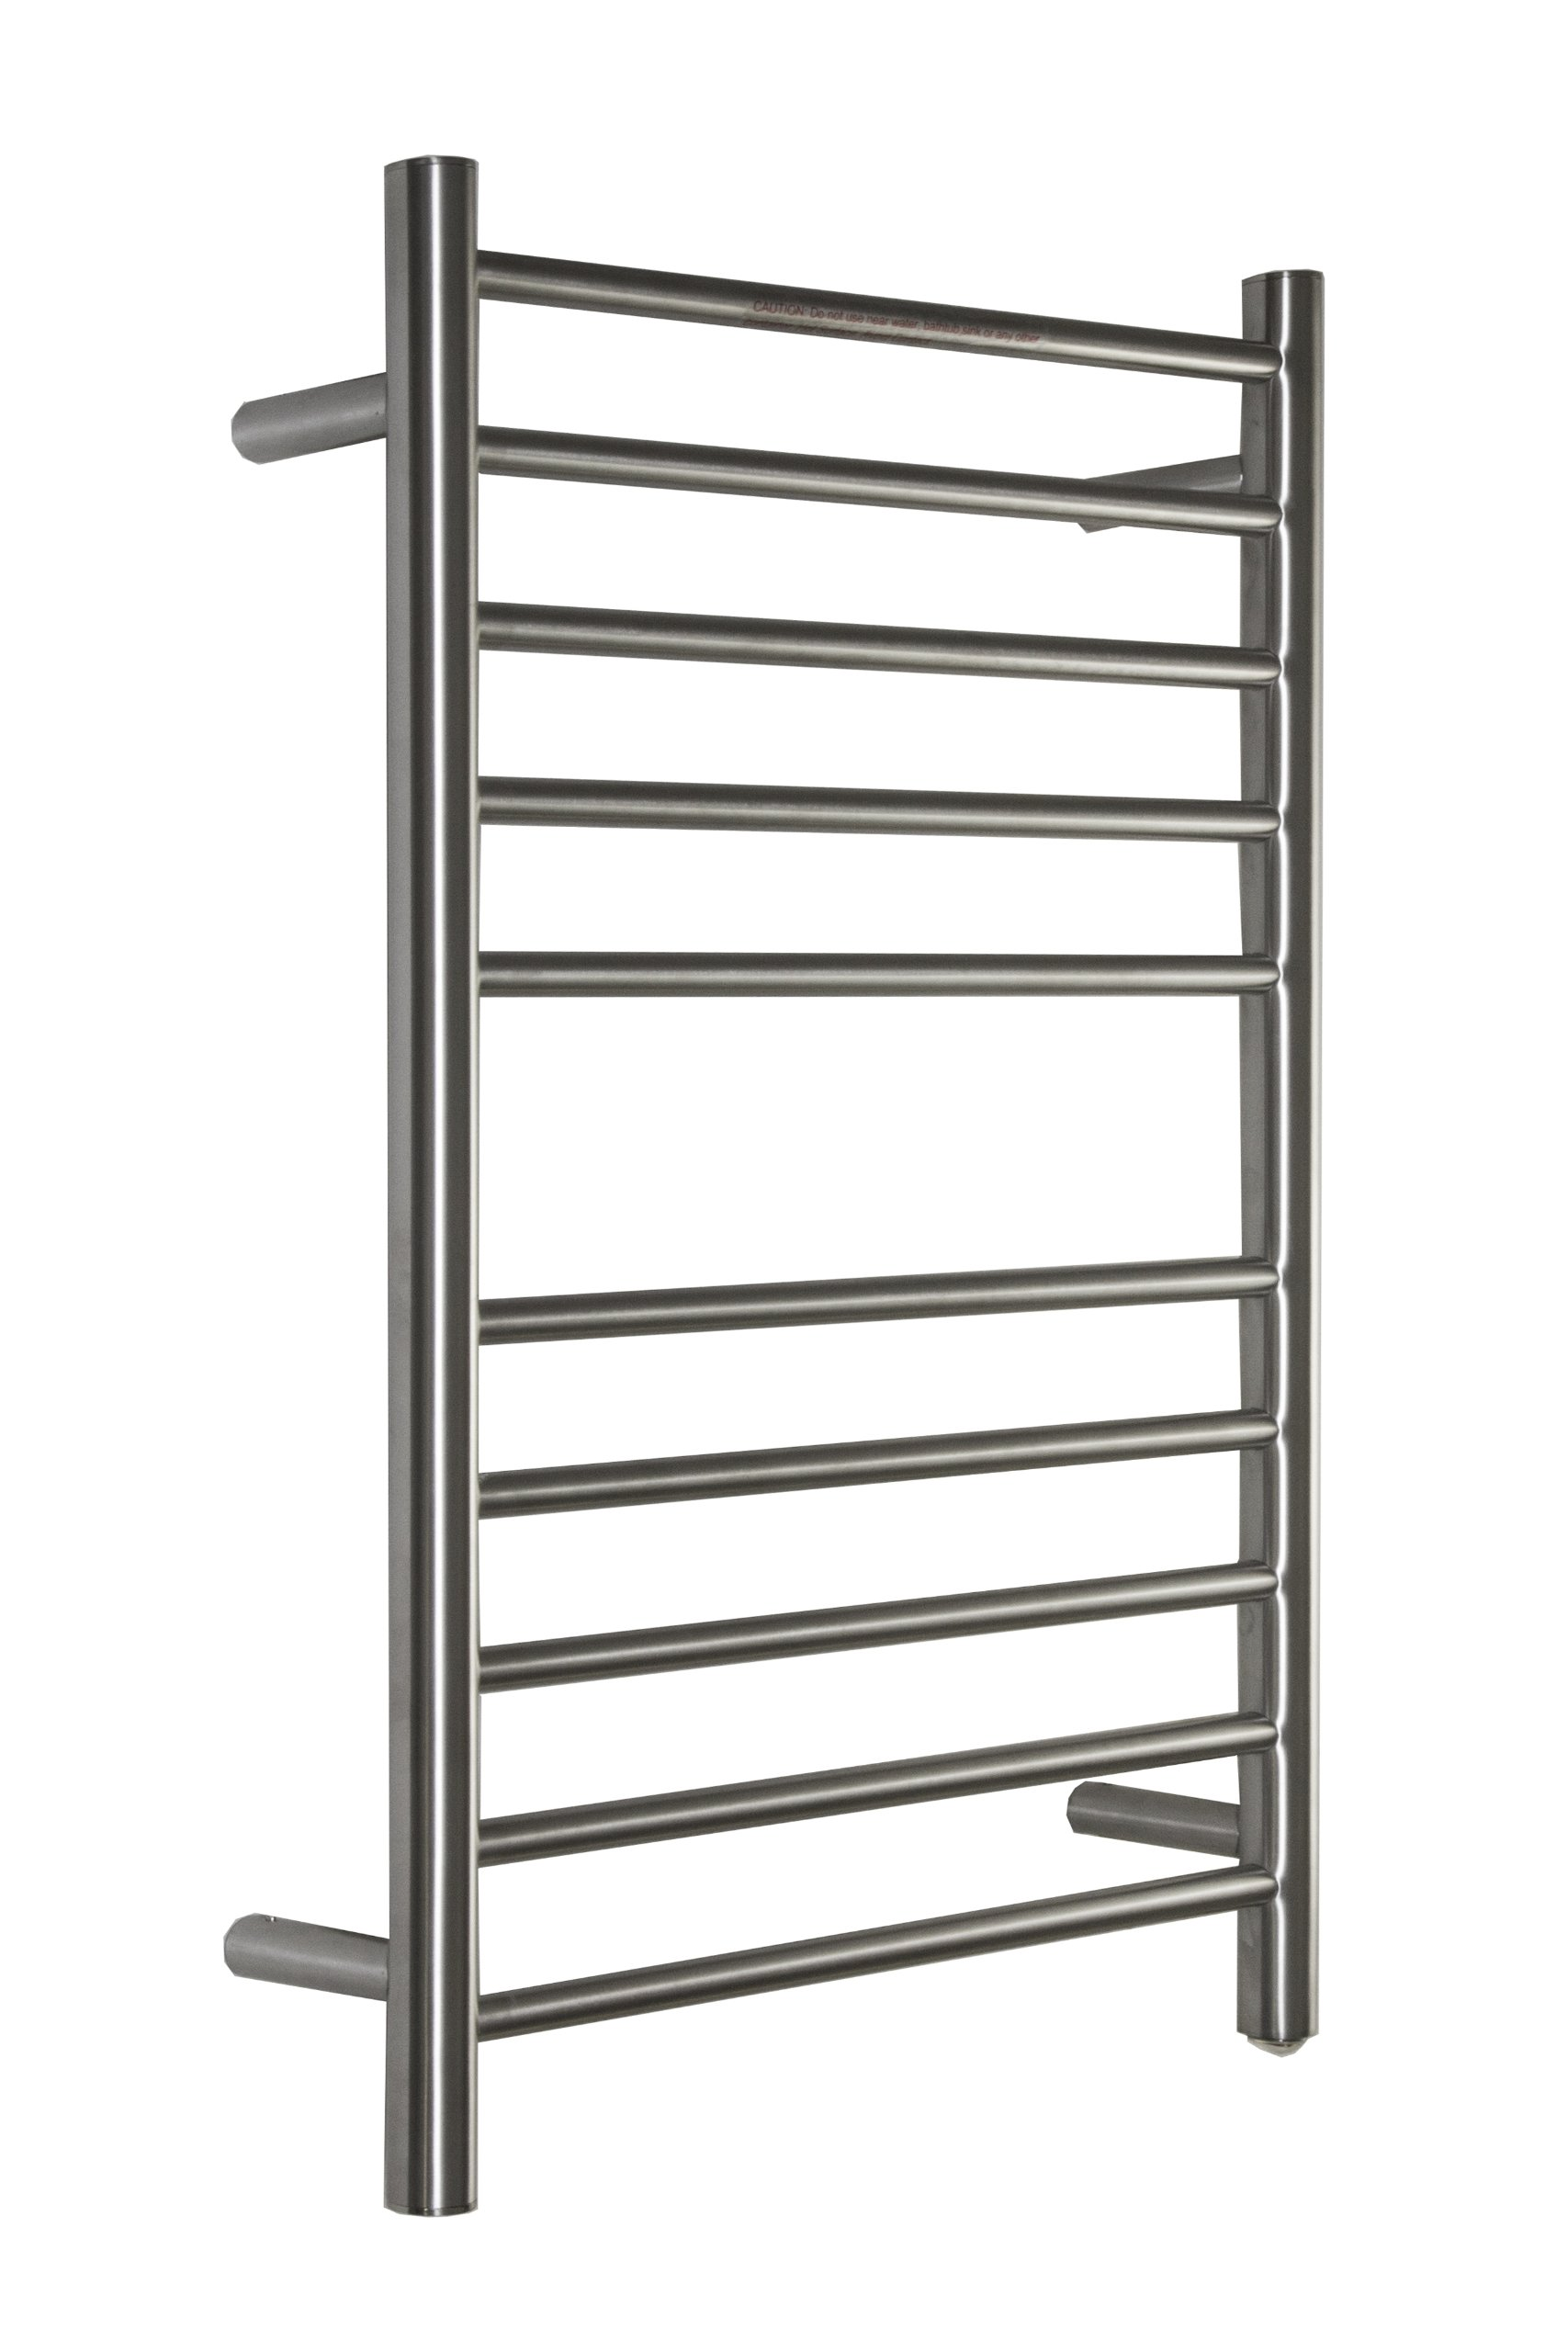 Virtu USA VTW-110A-BN Kozë Collection Towel Warmer, Brushed Nickel by Virtu USA